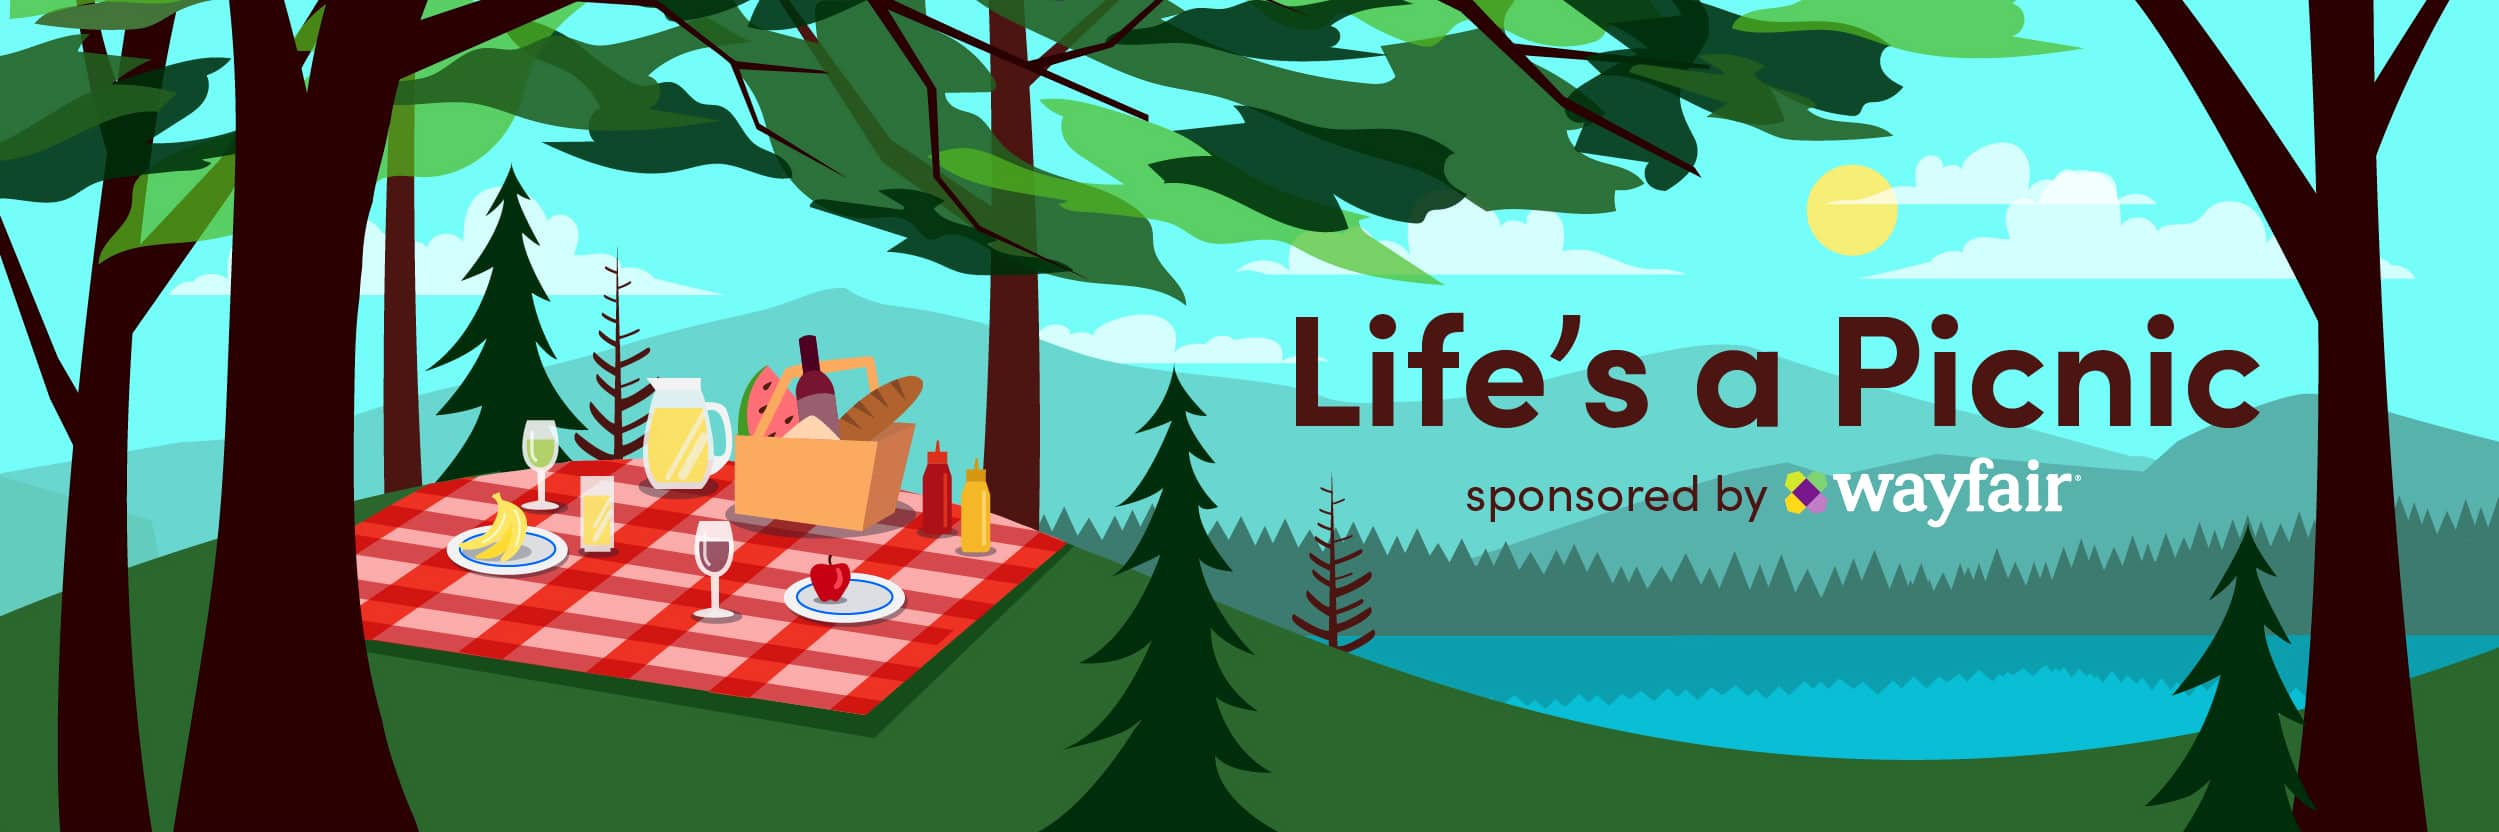 Life's A Picnic Banner